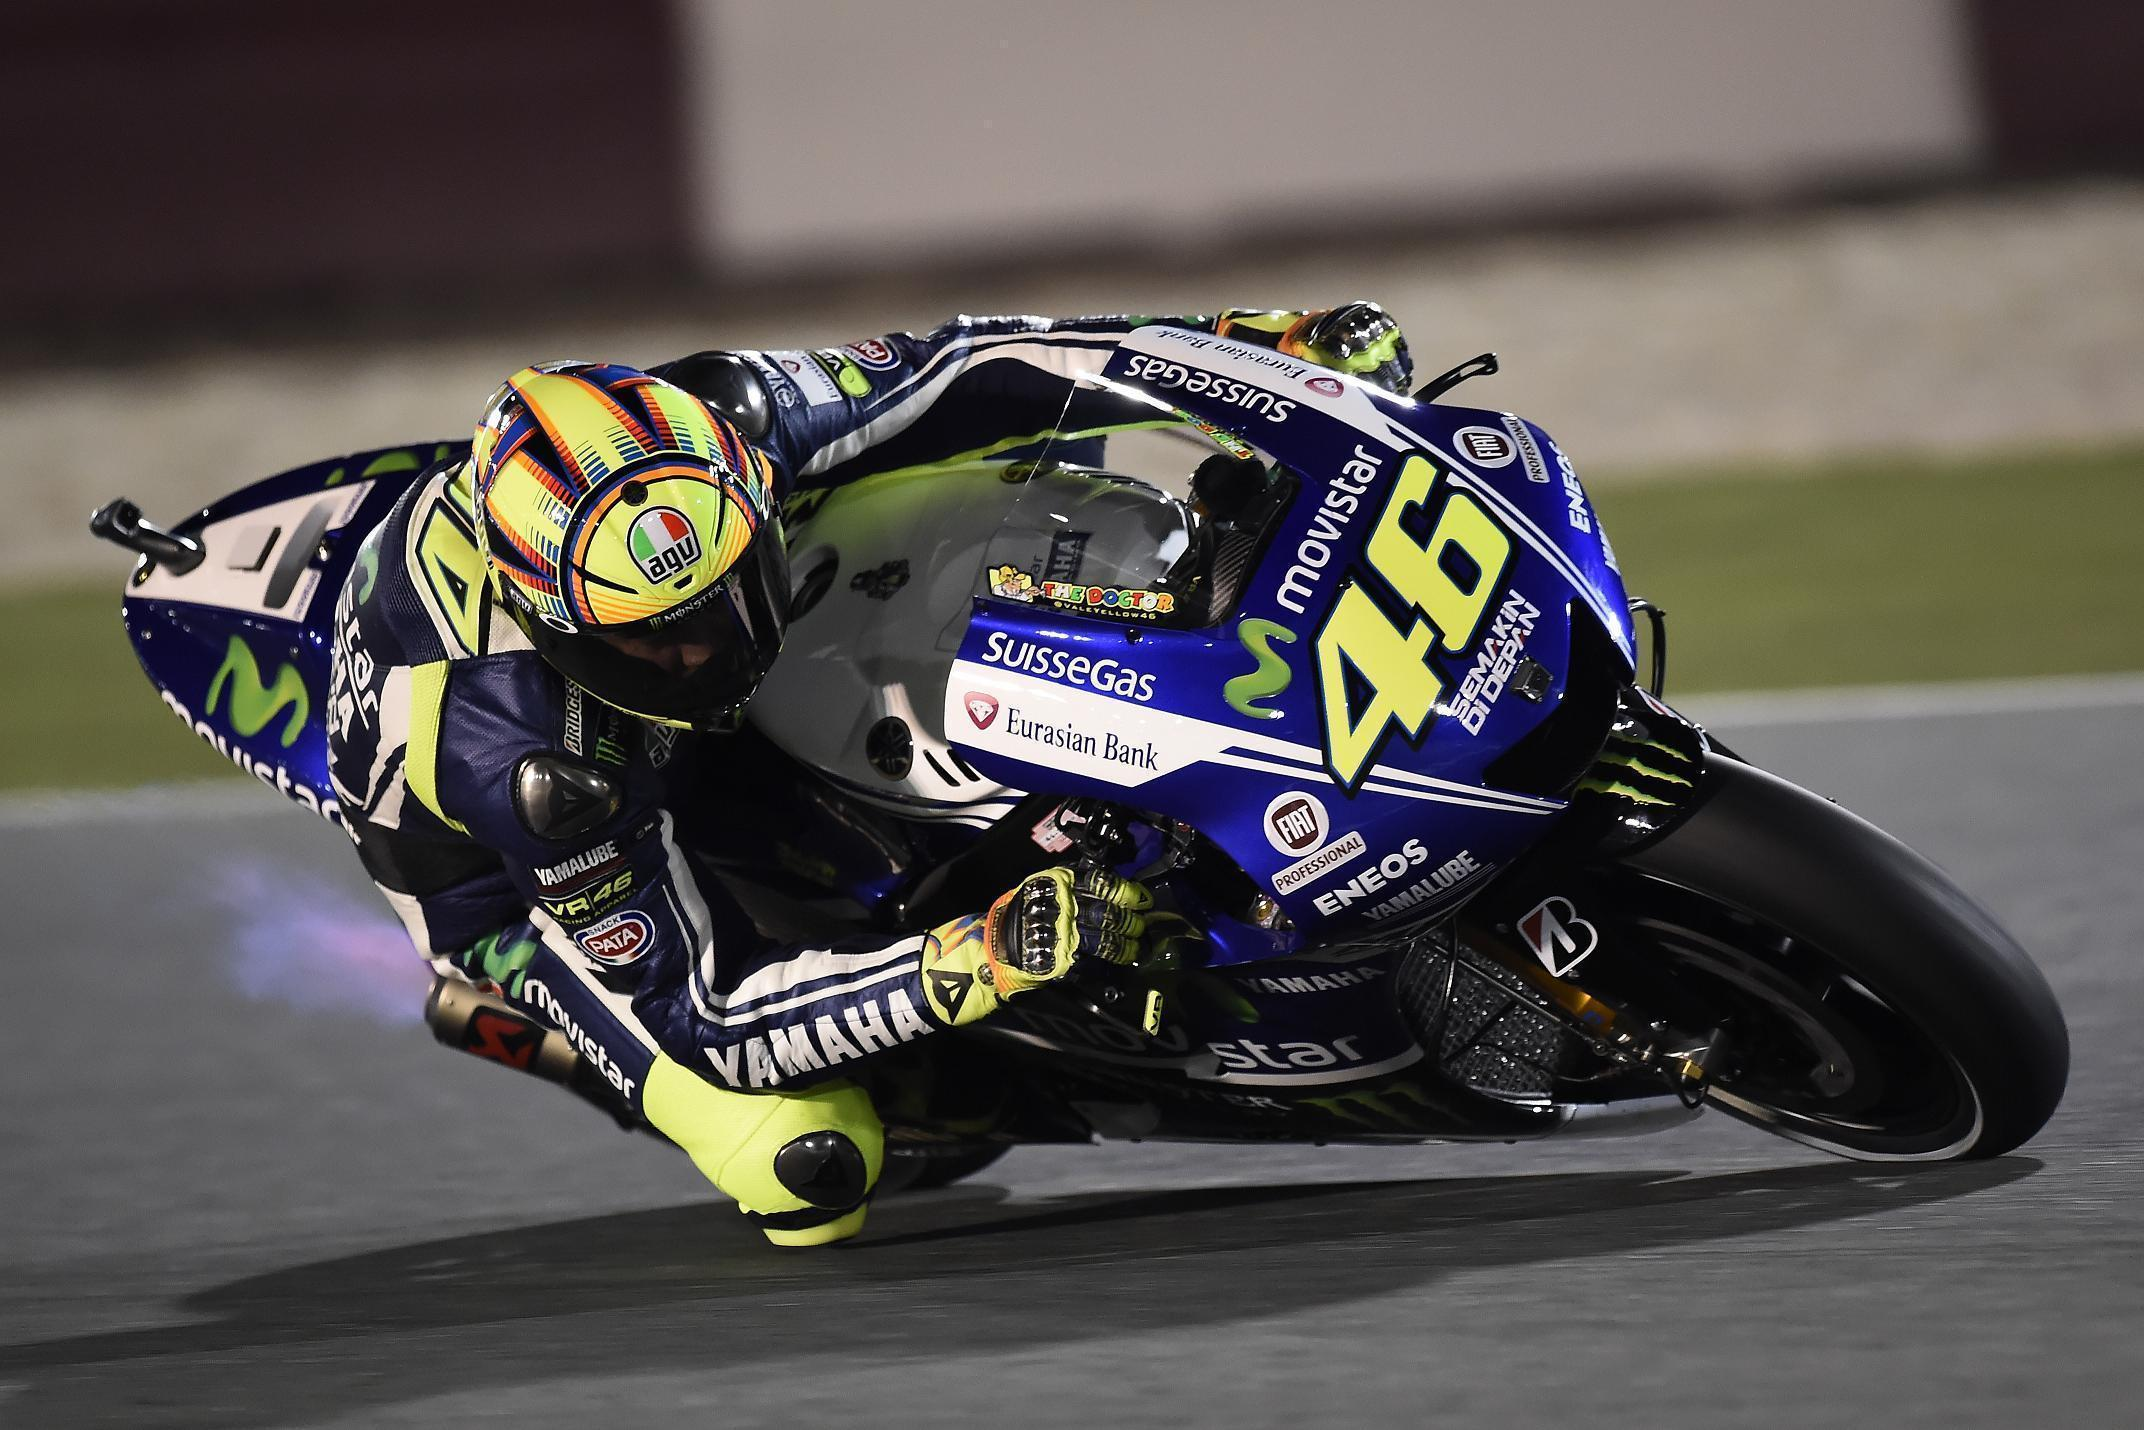 Valentino Rossi Movistar Yamaha 2014 MotoGP Wallpapers Wide or HD